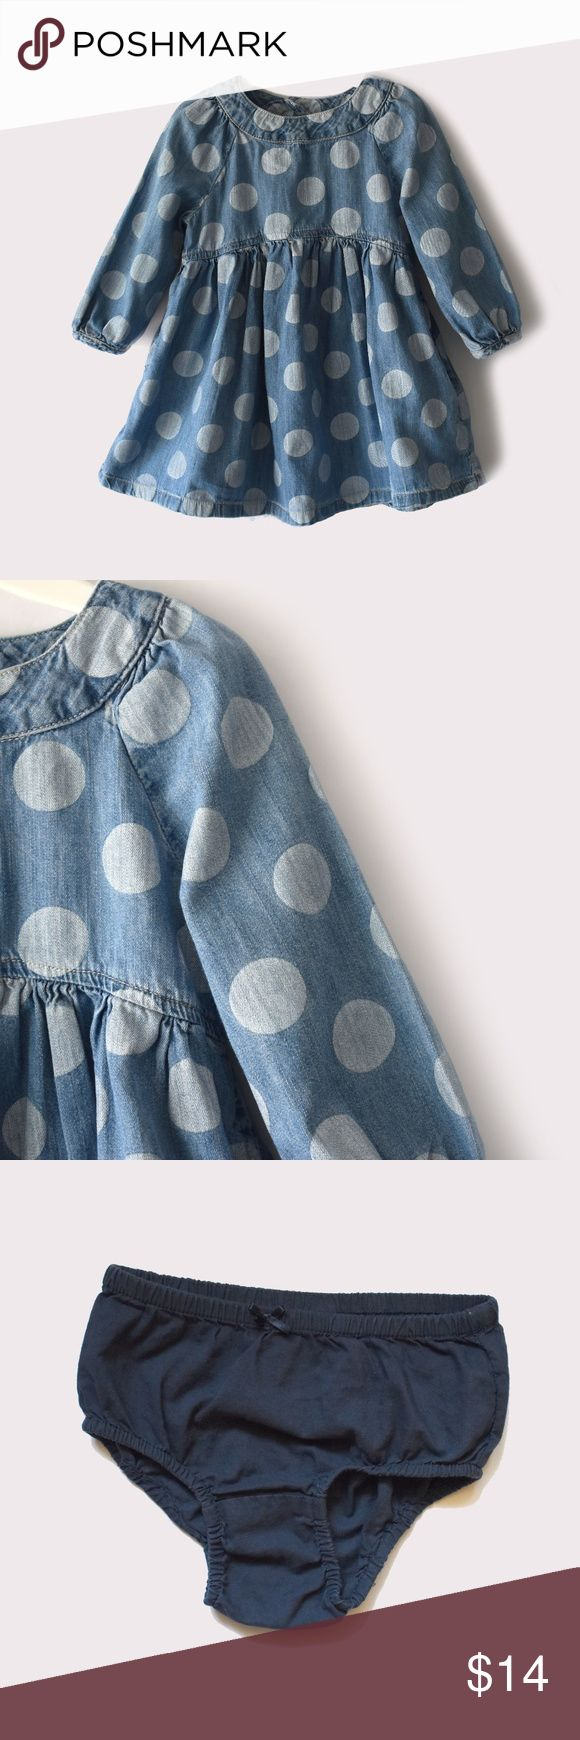 """Baby Gap Print Jean Dress  w/ diaper cover Baby Gap   size 2T   polka dot print   back button closure   diaper cover included   all pictures taken, product is shown as is   BUNDLE TO SAVE! I accept offers on bundles only. 10% off of 2 or more items. Items priced at $7 are the lowest price. Click on the """"Thinking of Making an Offer"""" post for more Info. GAP Dresses"""